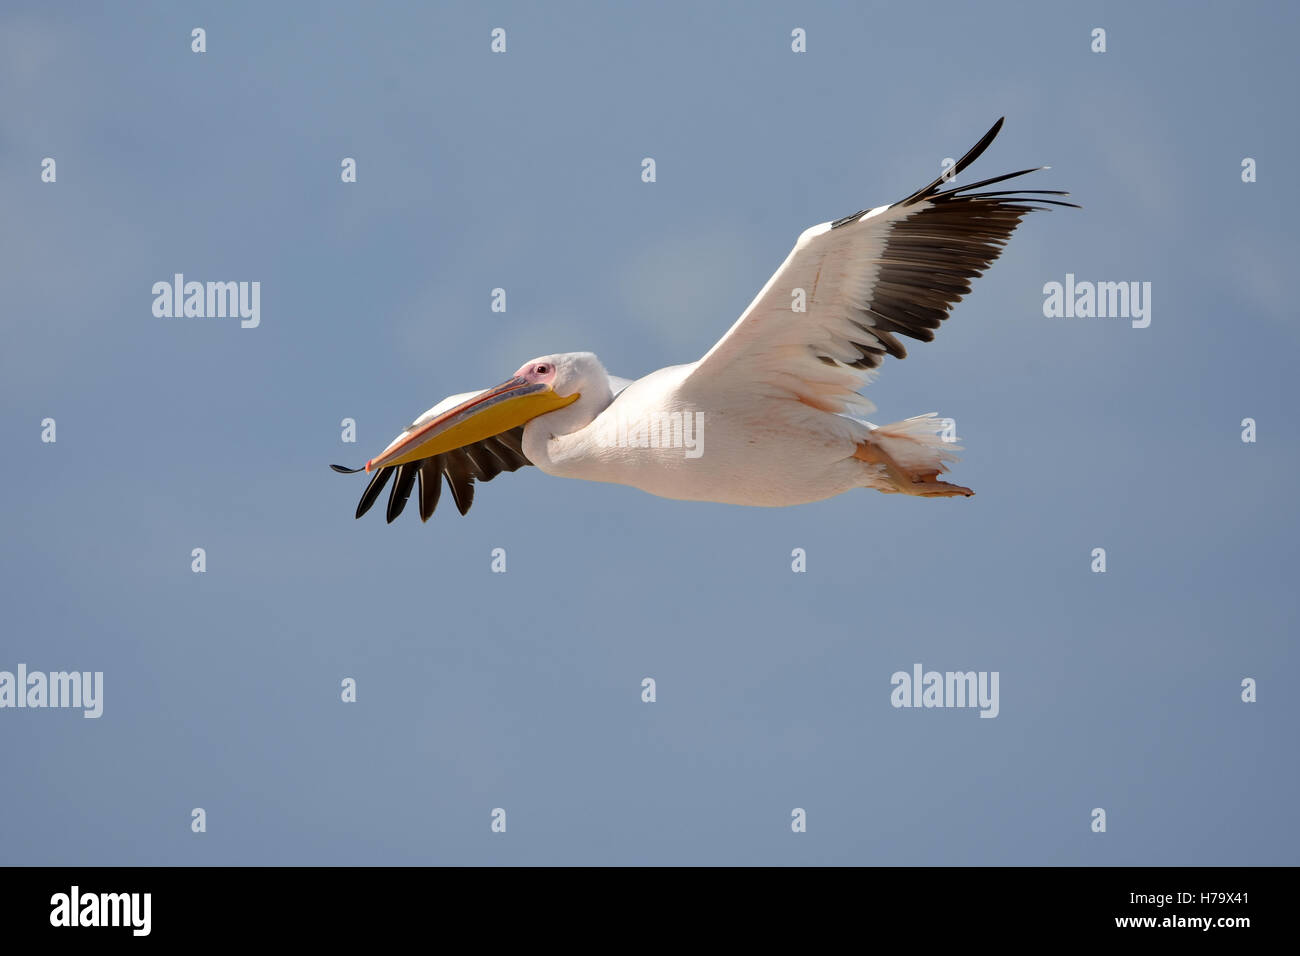 Great White Pelican flying, Side view Photo Stock